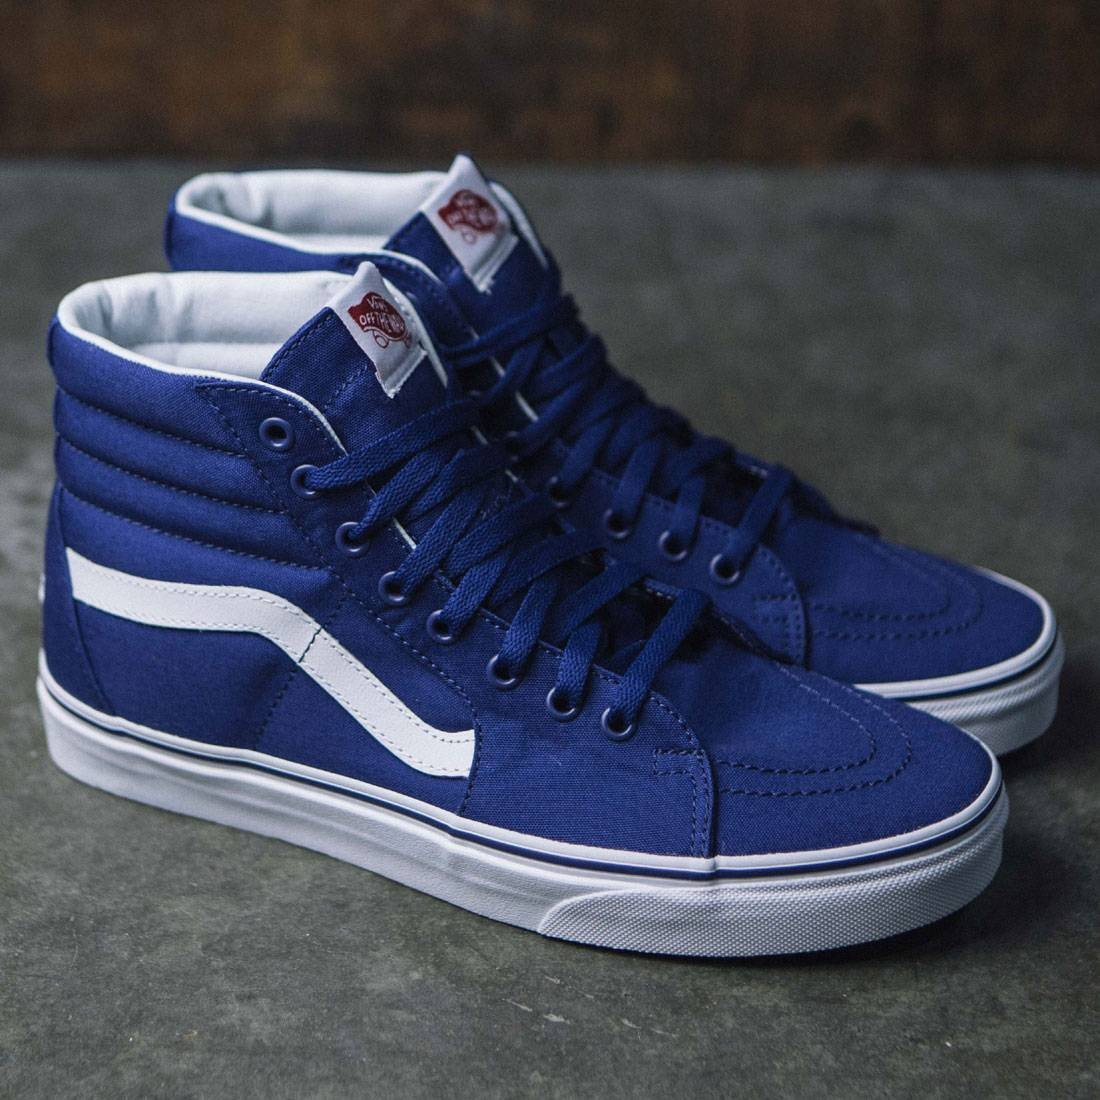 45536a72c1b Vans x MLB Los Angeles Dodgers Men Sk8-Hi - Dodgers (white   blue)